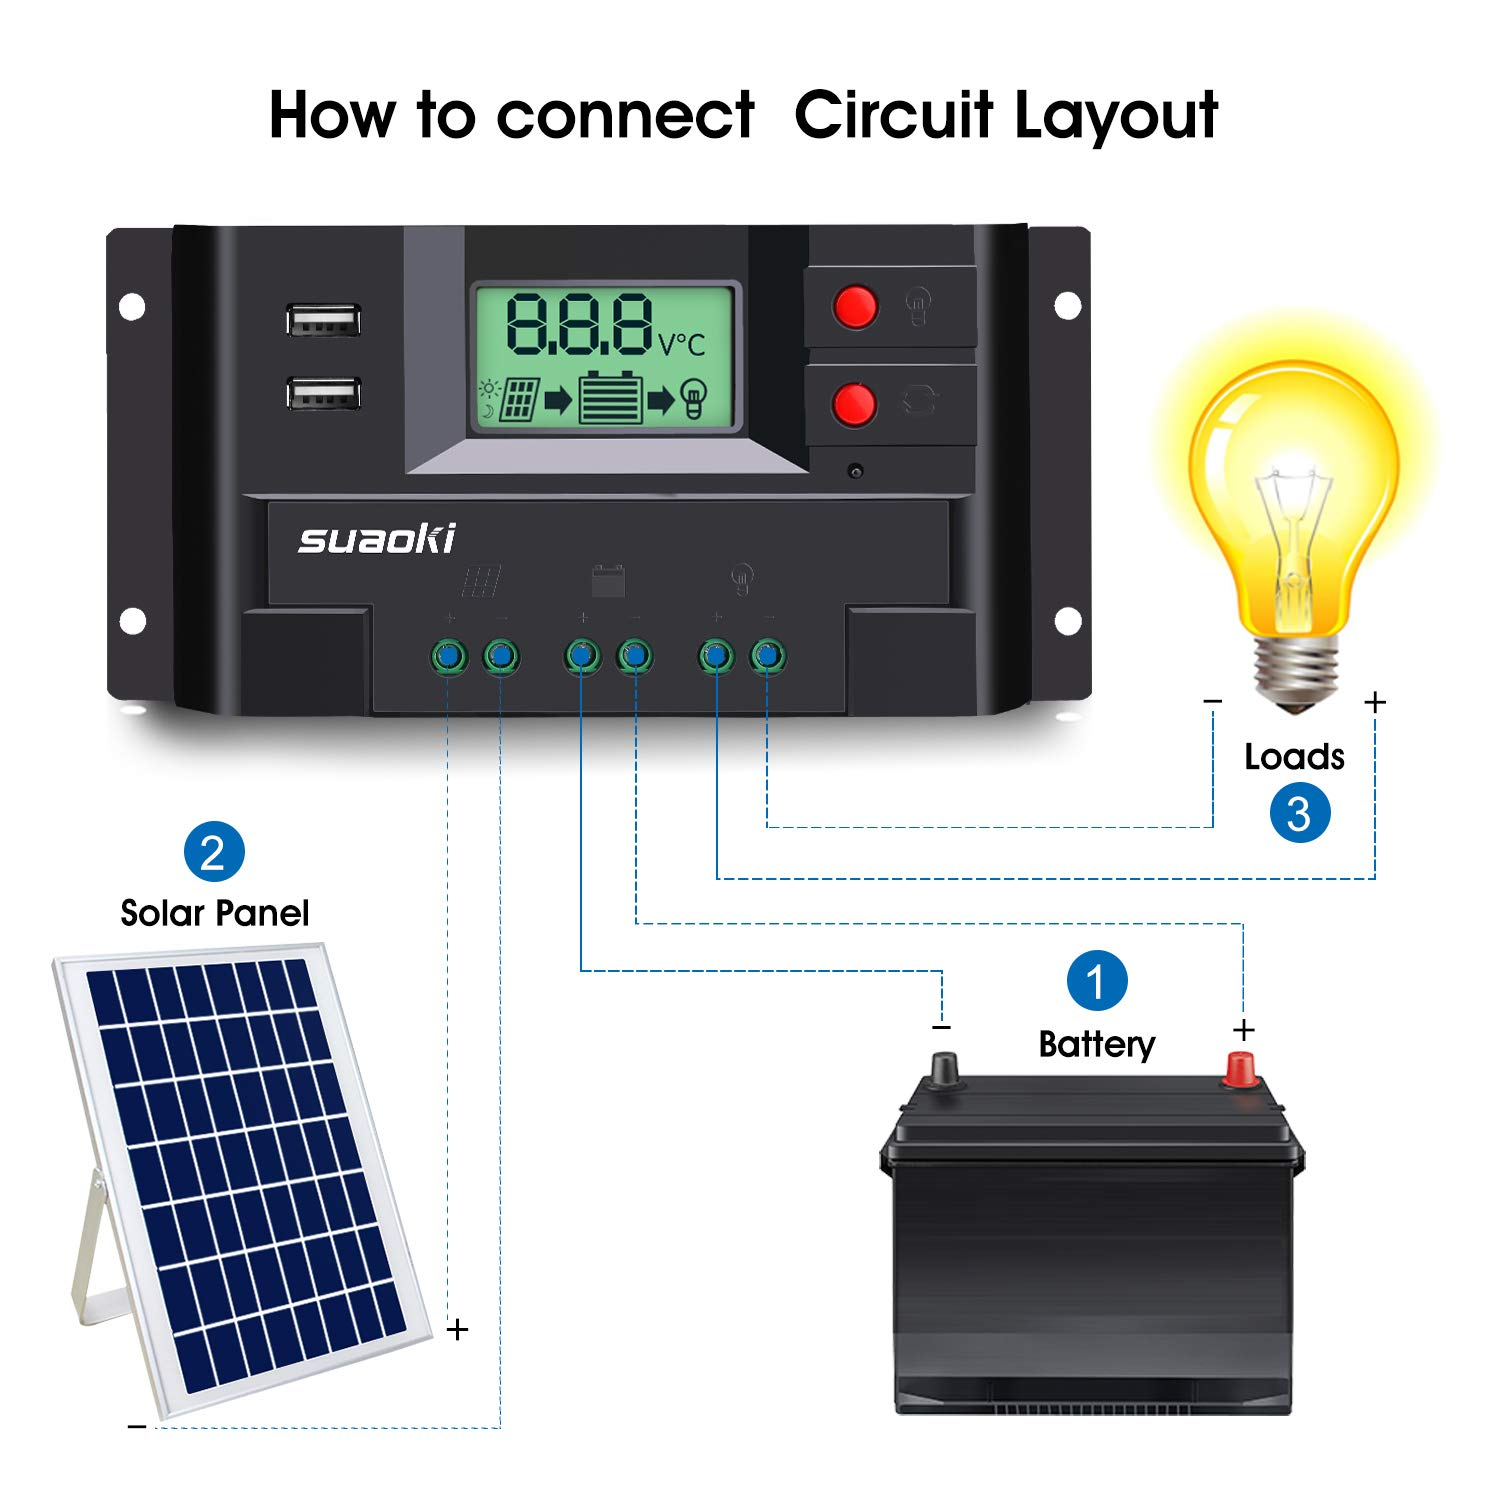 Suaoki 20a Solar Charger Controller 12v 24v Pwm Panel Regulator Auto Parameter Adjustable With Lcd Display And Dual Usb Port Dc Voltage Circuit Smart Charge 30a Garden